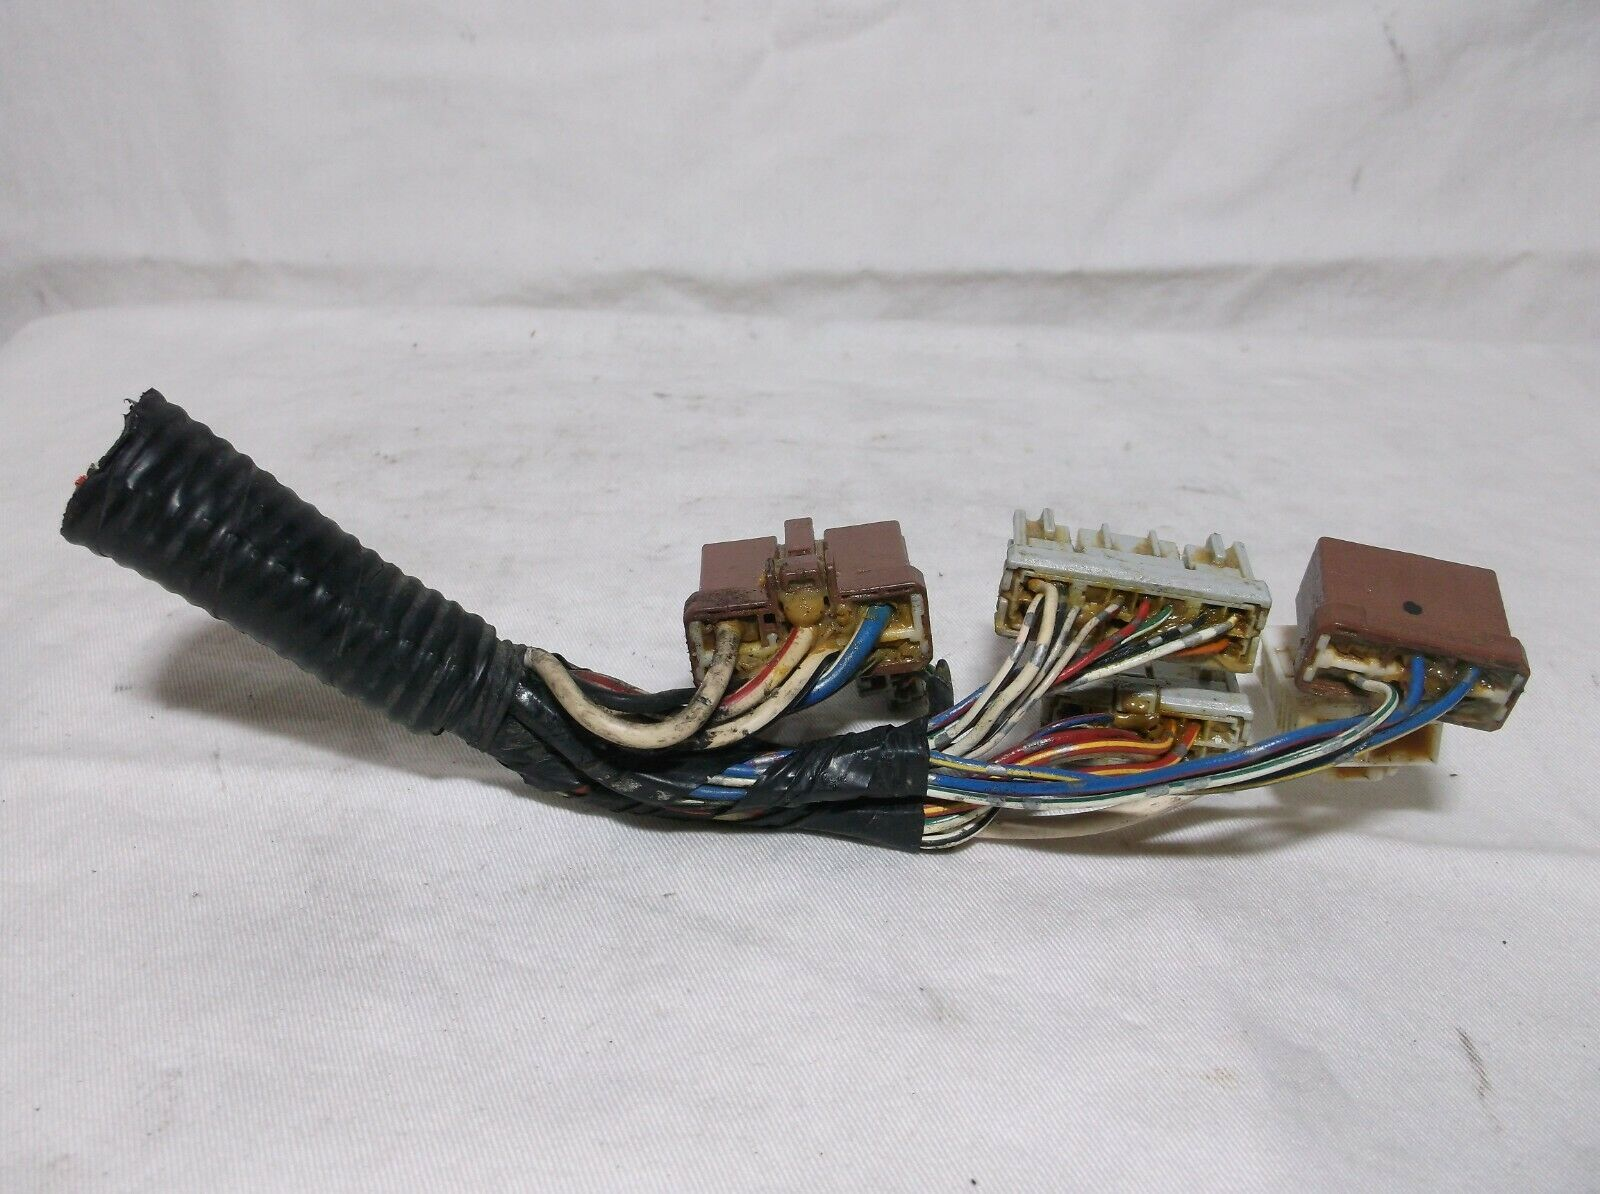 01-02-03-04-05 Honda Civic   Fuse   Relay   Box   Harness  Plugs  Wires